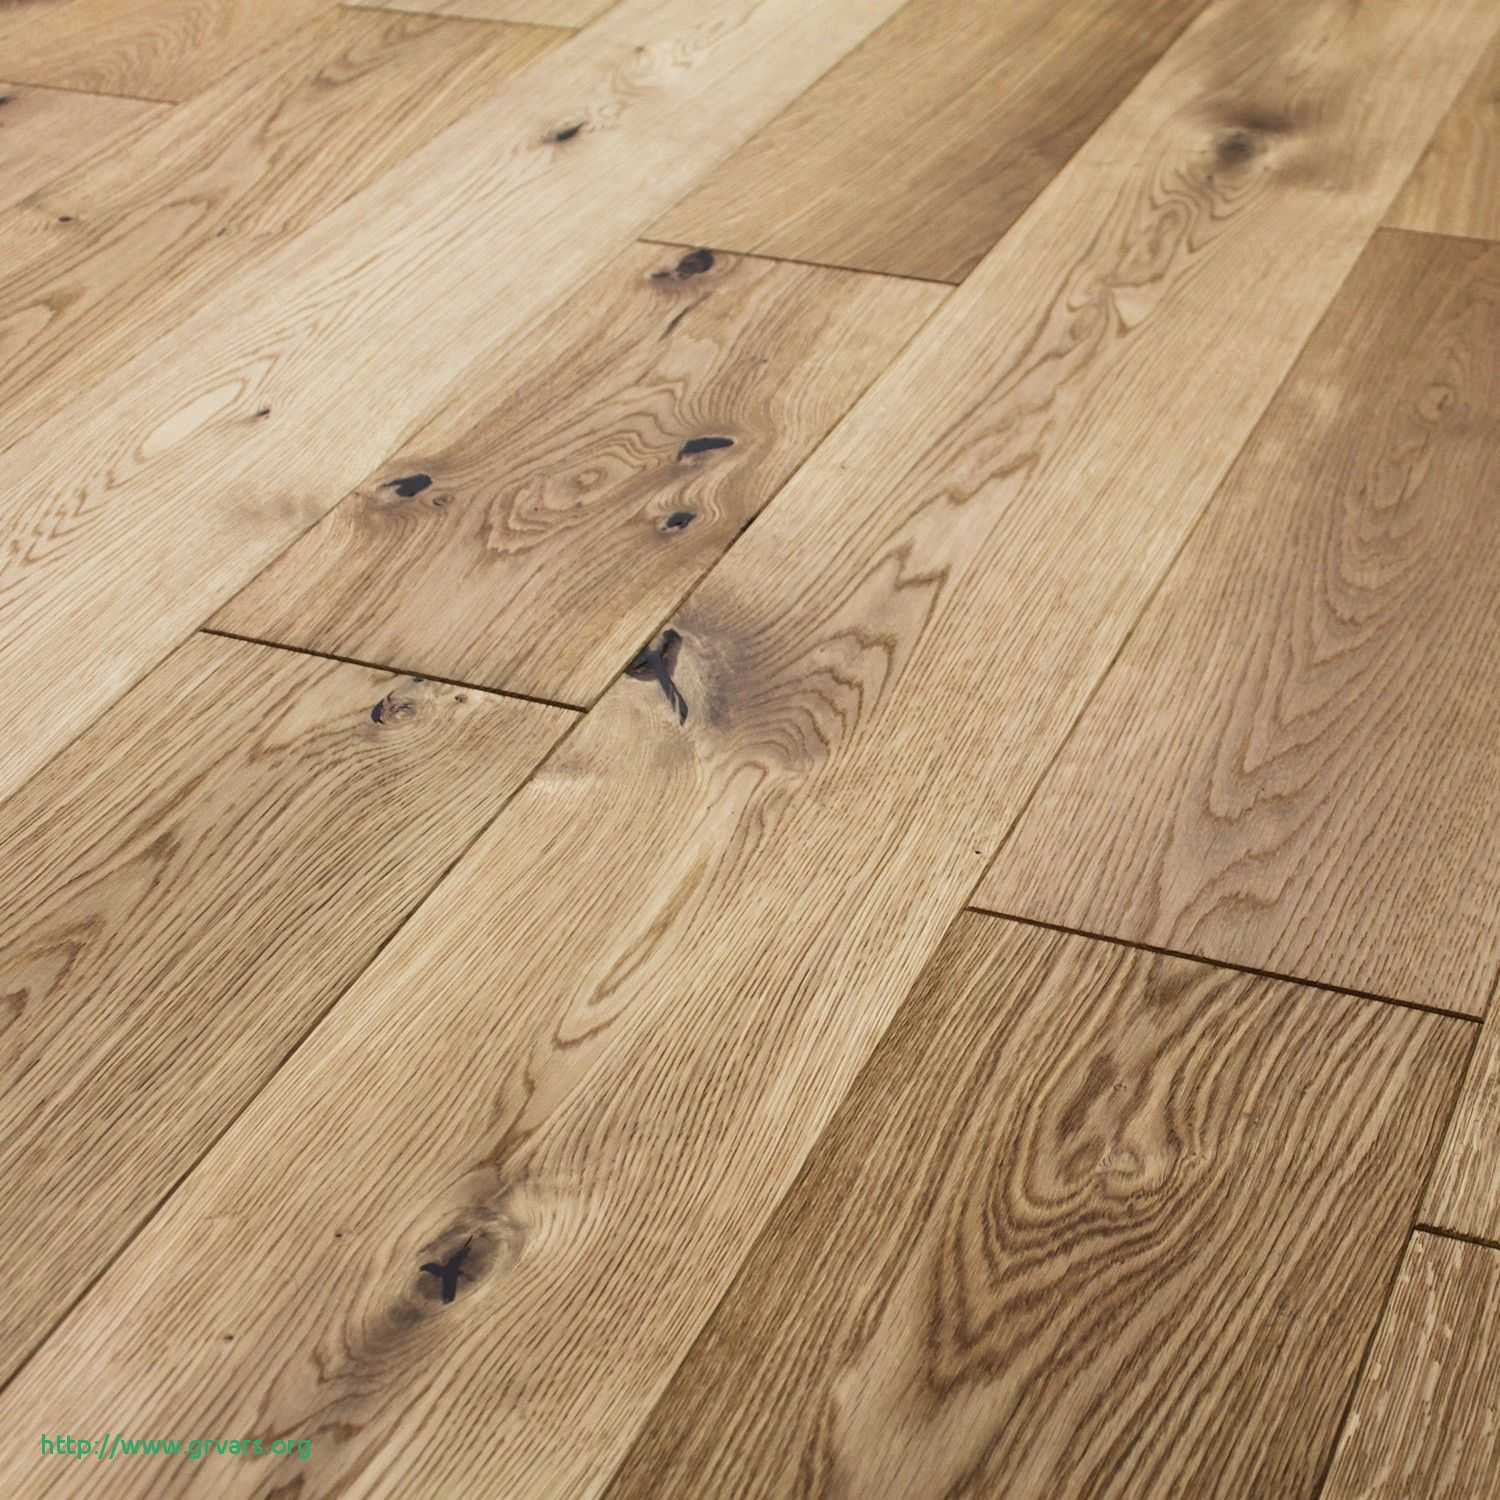 Average Cost to Install Engineered Hardwood Flooring Of 15 A‰lagant Best Way to Install Engineered Wood Flooring Ideas Blog Regarding Best Way to Install Engineered Wood Flooring Meilleur De Rustic Cottage Oak Brushed